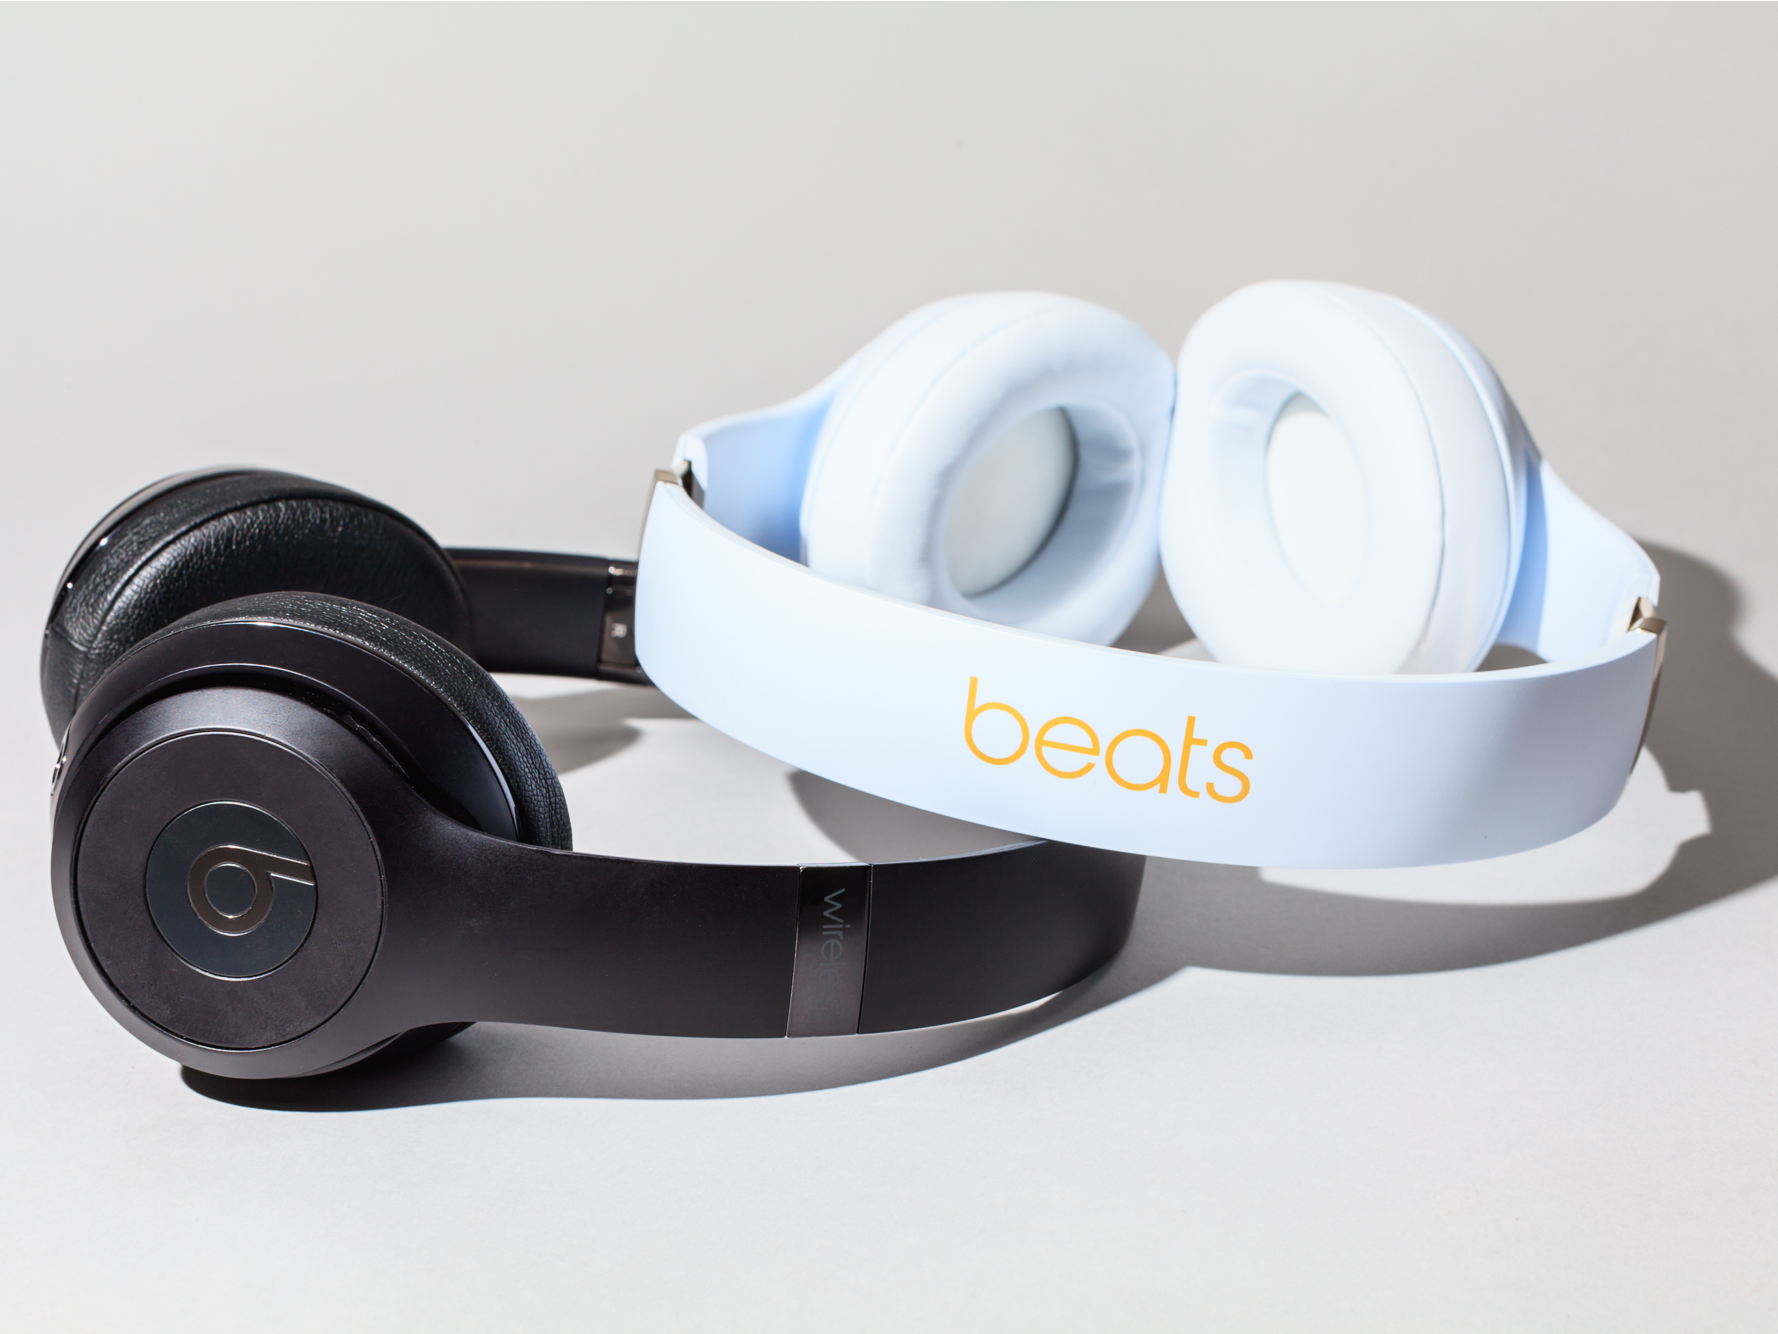 Apple is working on high-end headphones that may launch as soon as this year (AAPL)